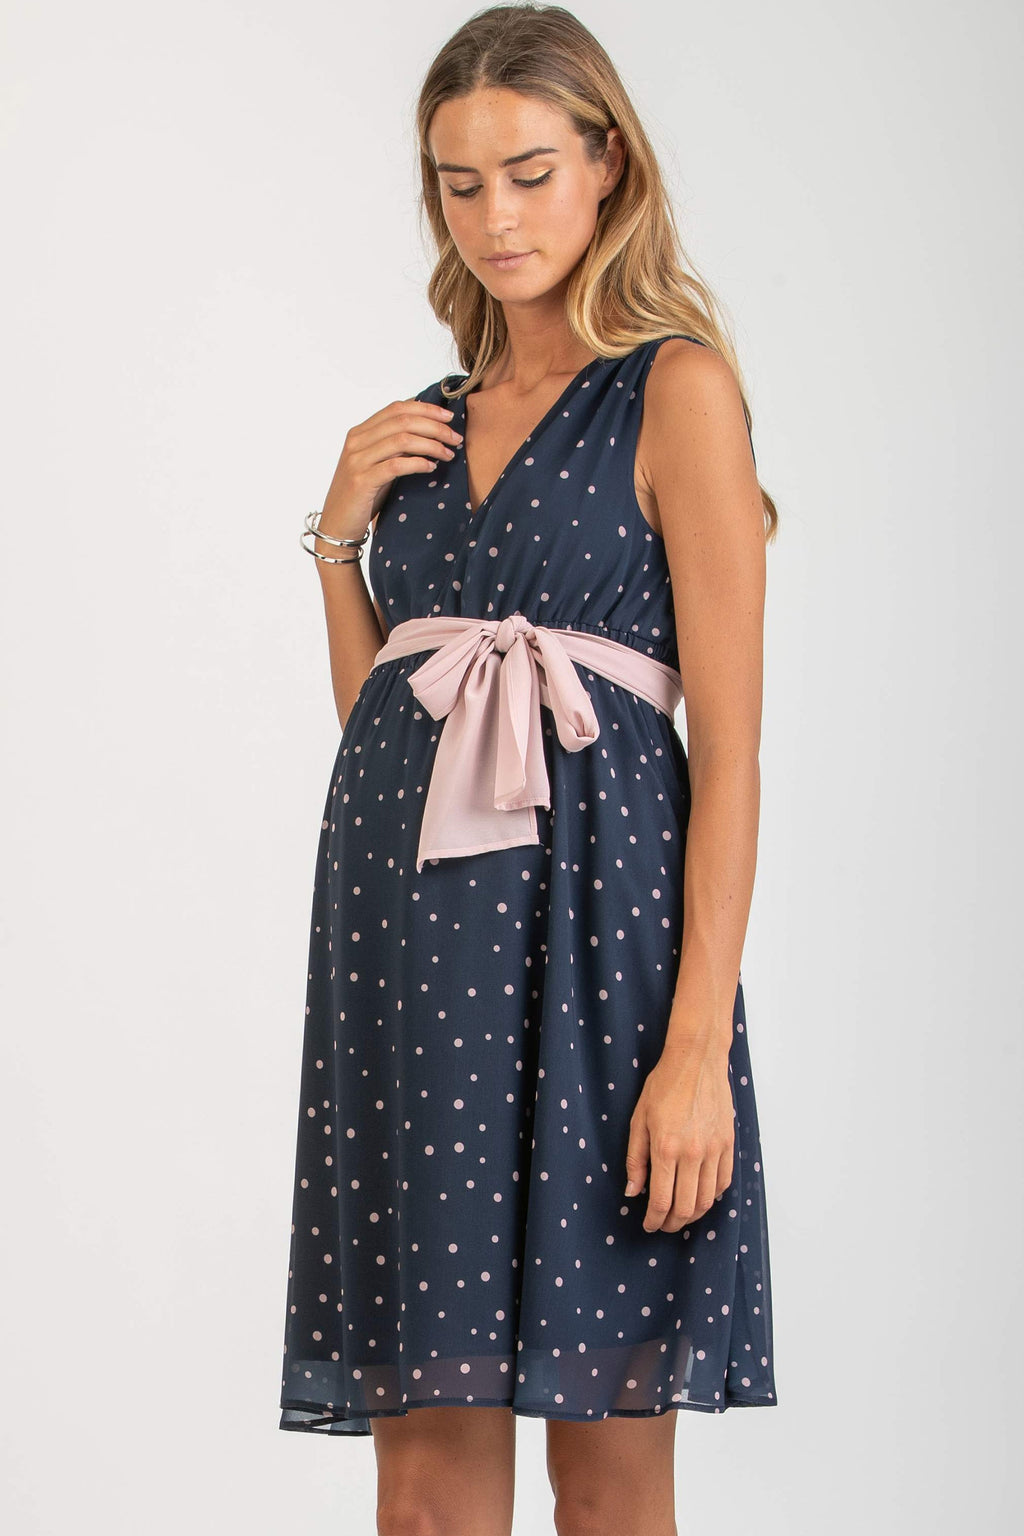 Michaela Chiffon Maternity Dress